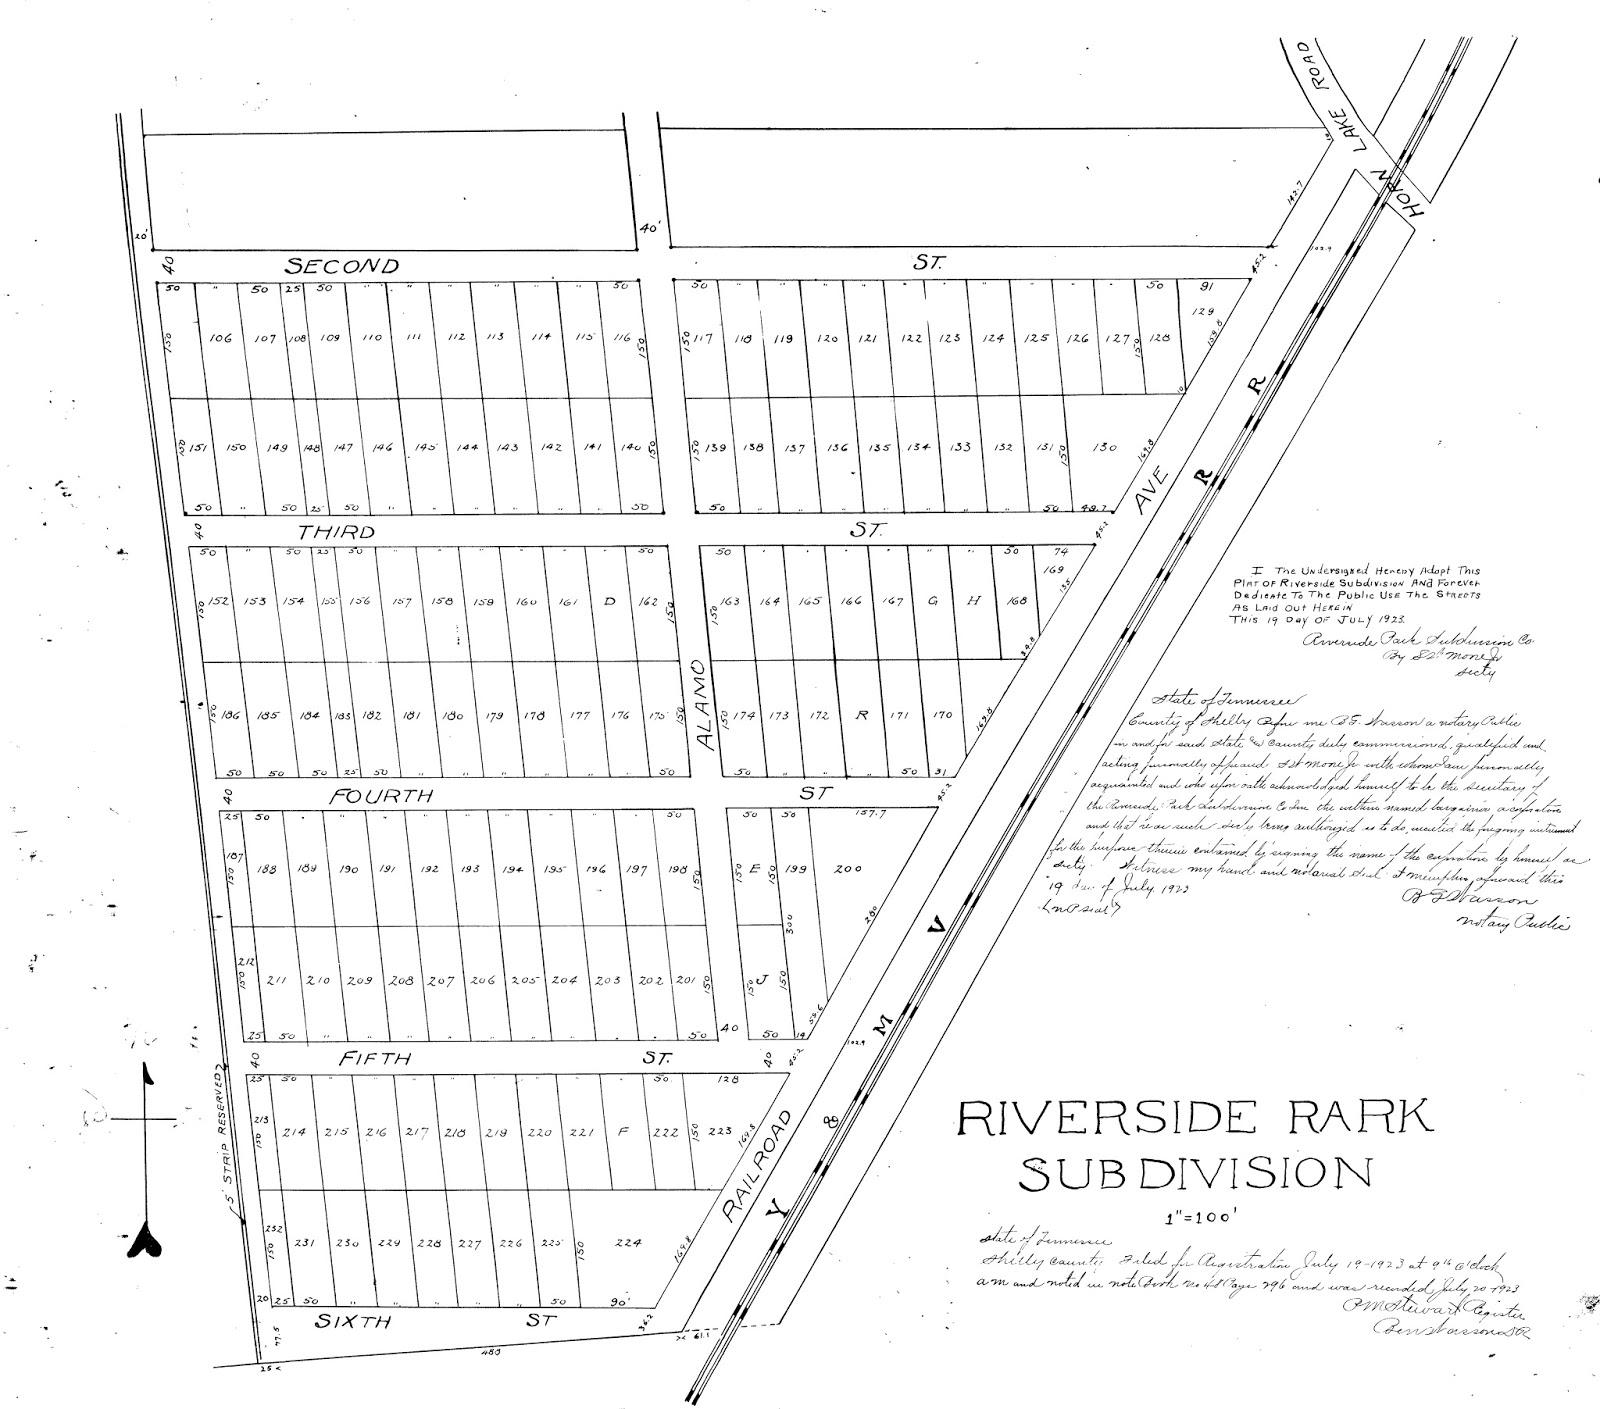 the subdivision plat for the neighborhood shows that first was really just one of many numbered streets in the area and this plat pre dates the ordinance